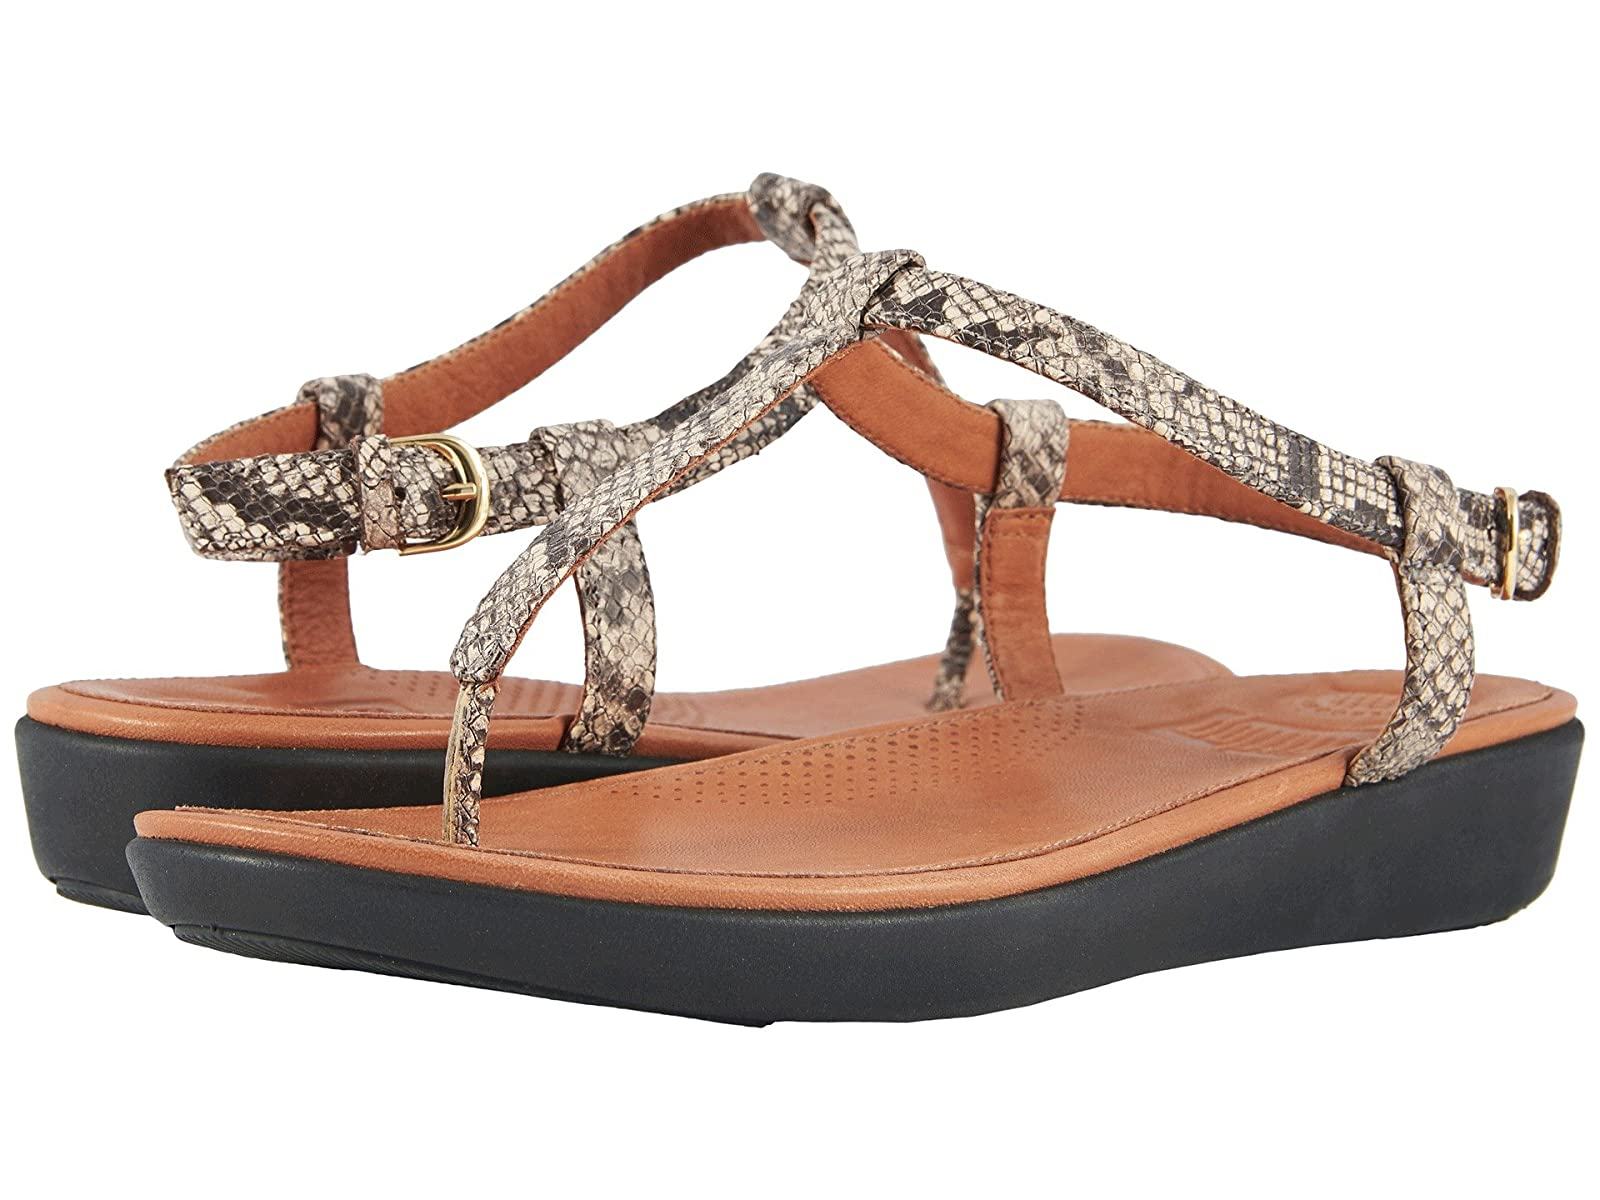 FitFlop Tia Toe Thong SandalsCheap and distinctive eye-catching shoes